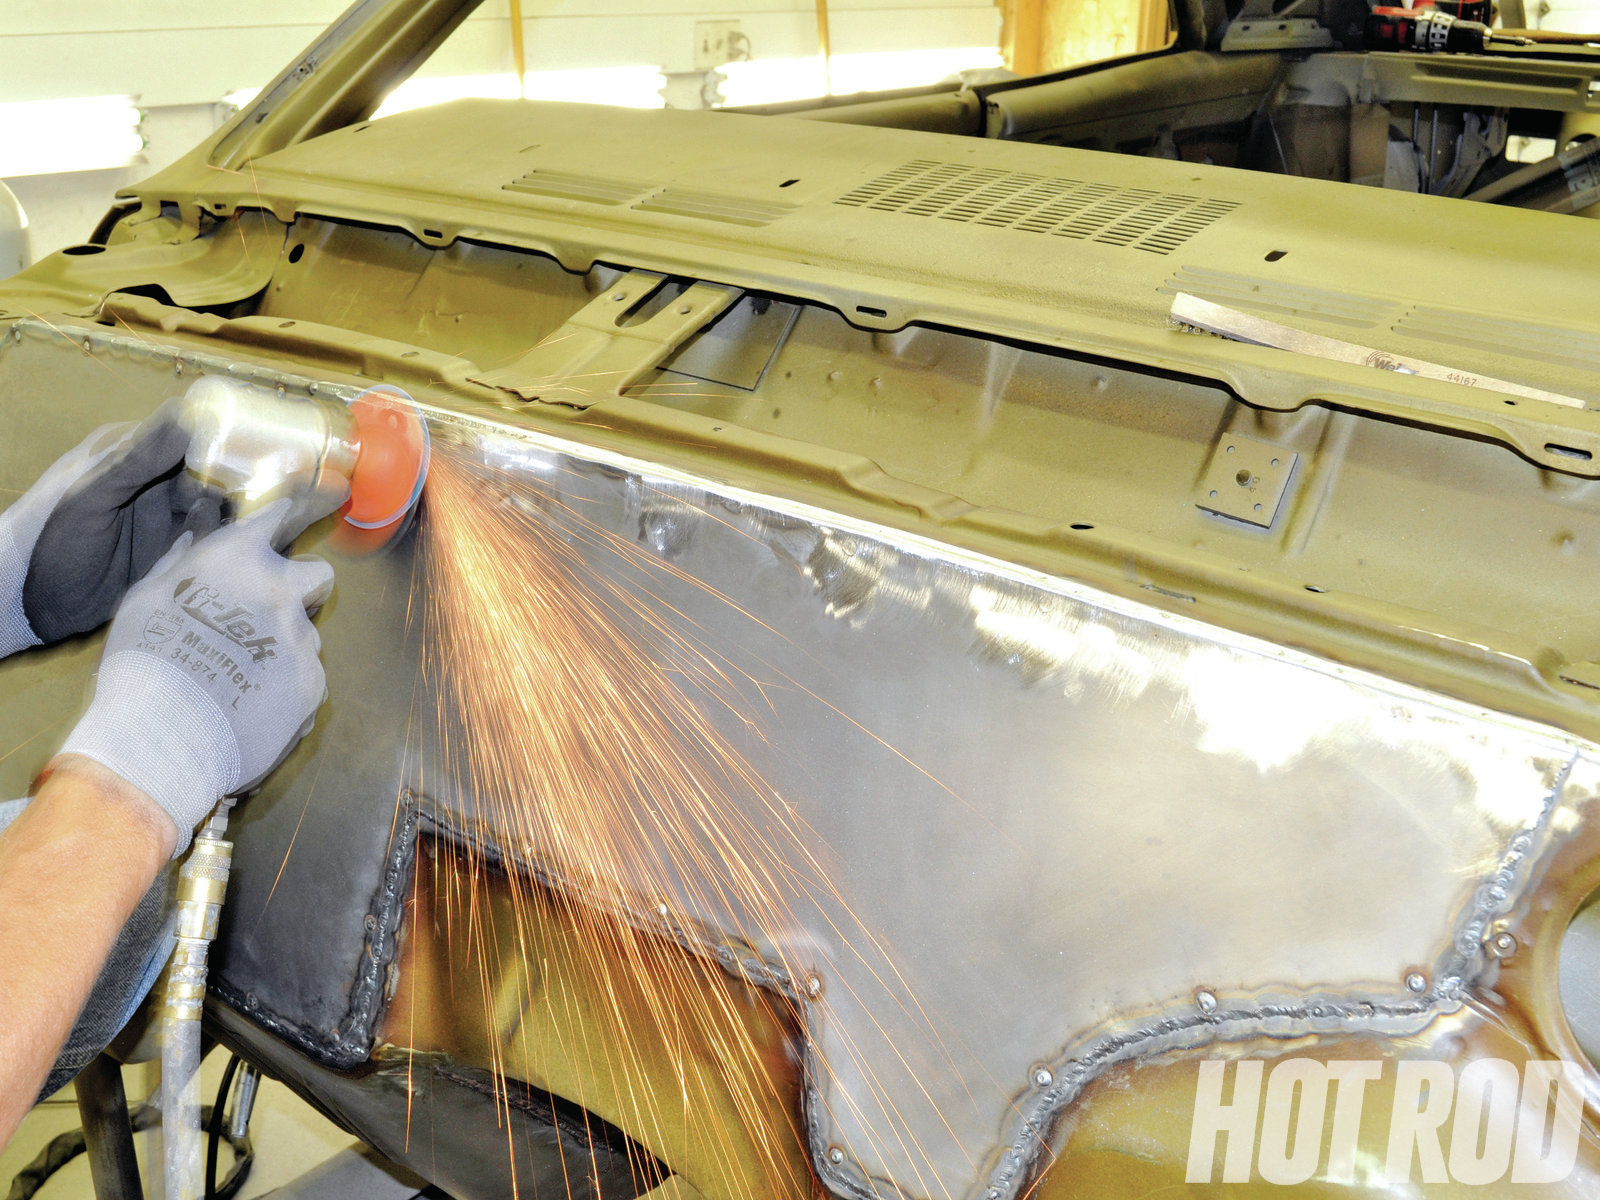 Once the edges of the panel are welded, you can remove the Clecos and fill the small holes with a MIG welder. The final bit of metalwork is grinding the welds smooth. You'll probably need a thin layer of body filler in some spots.